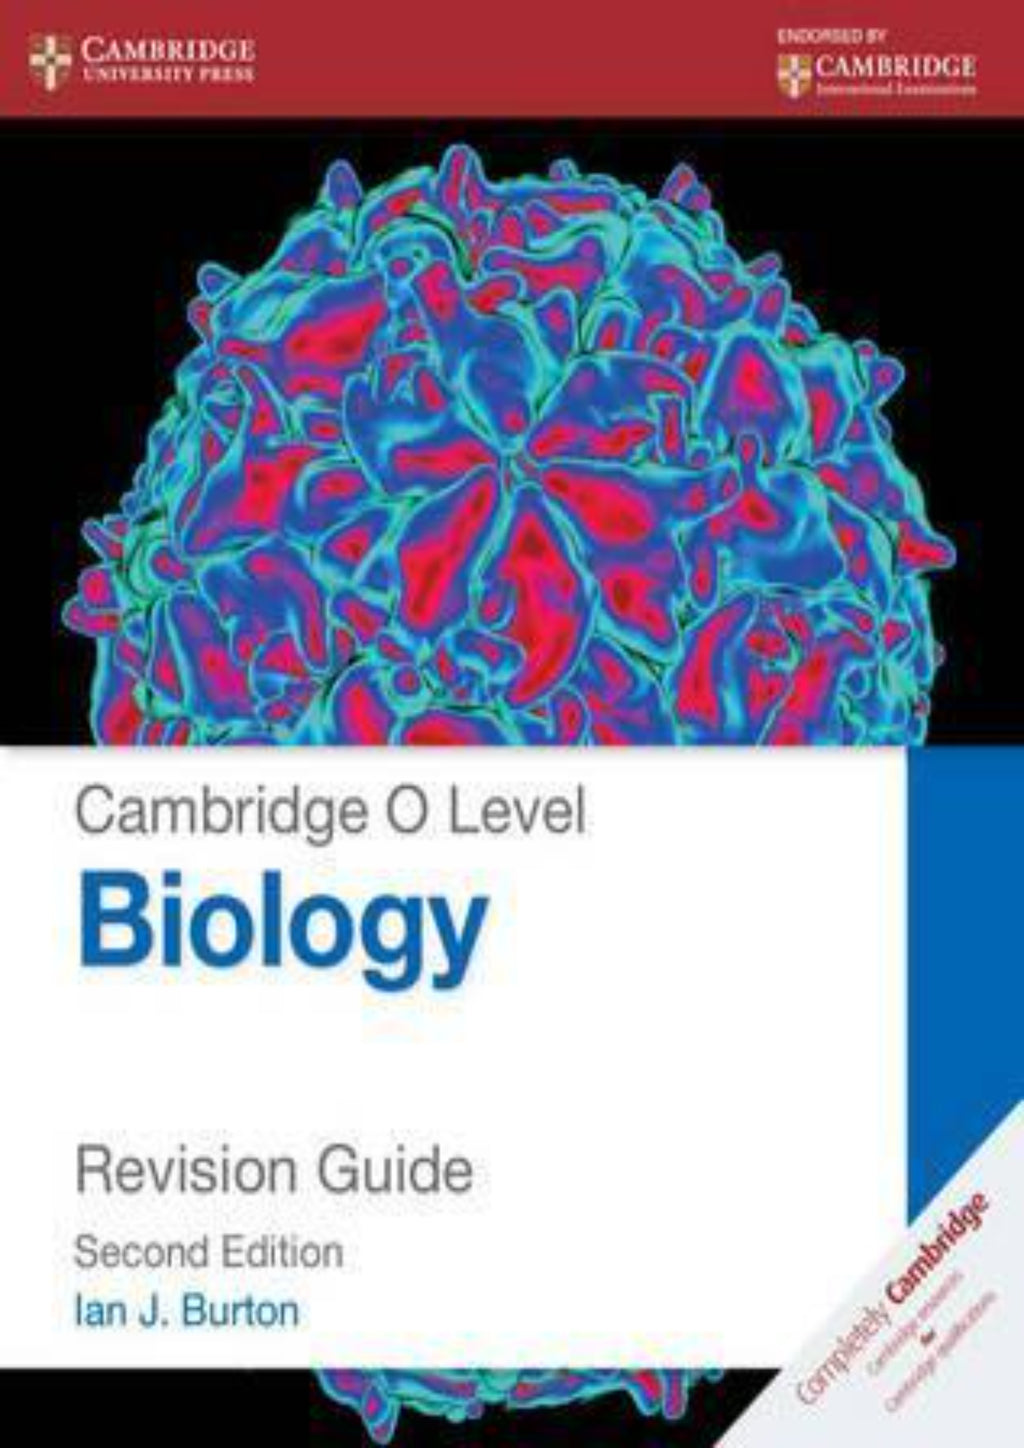 Cambridge O-Level Biology (5090) Revision Guide 2nd Edition